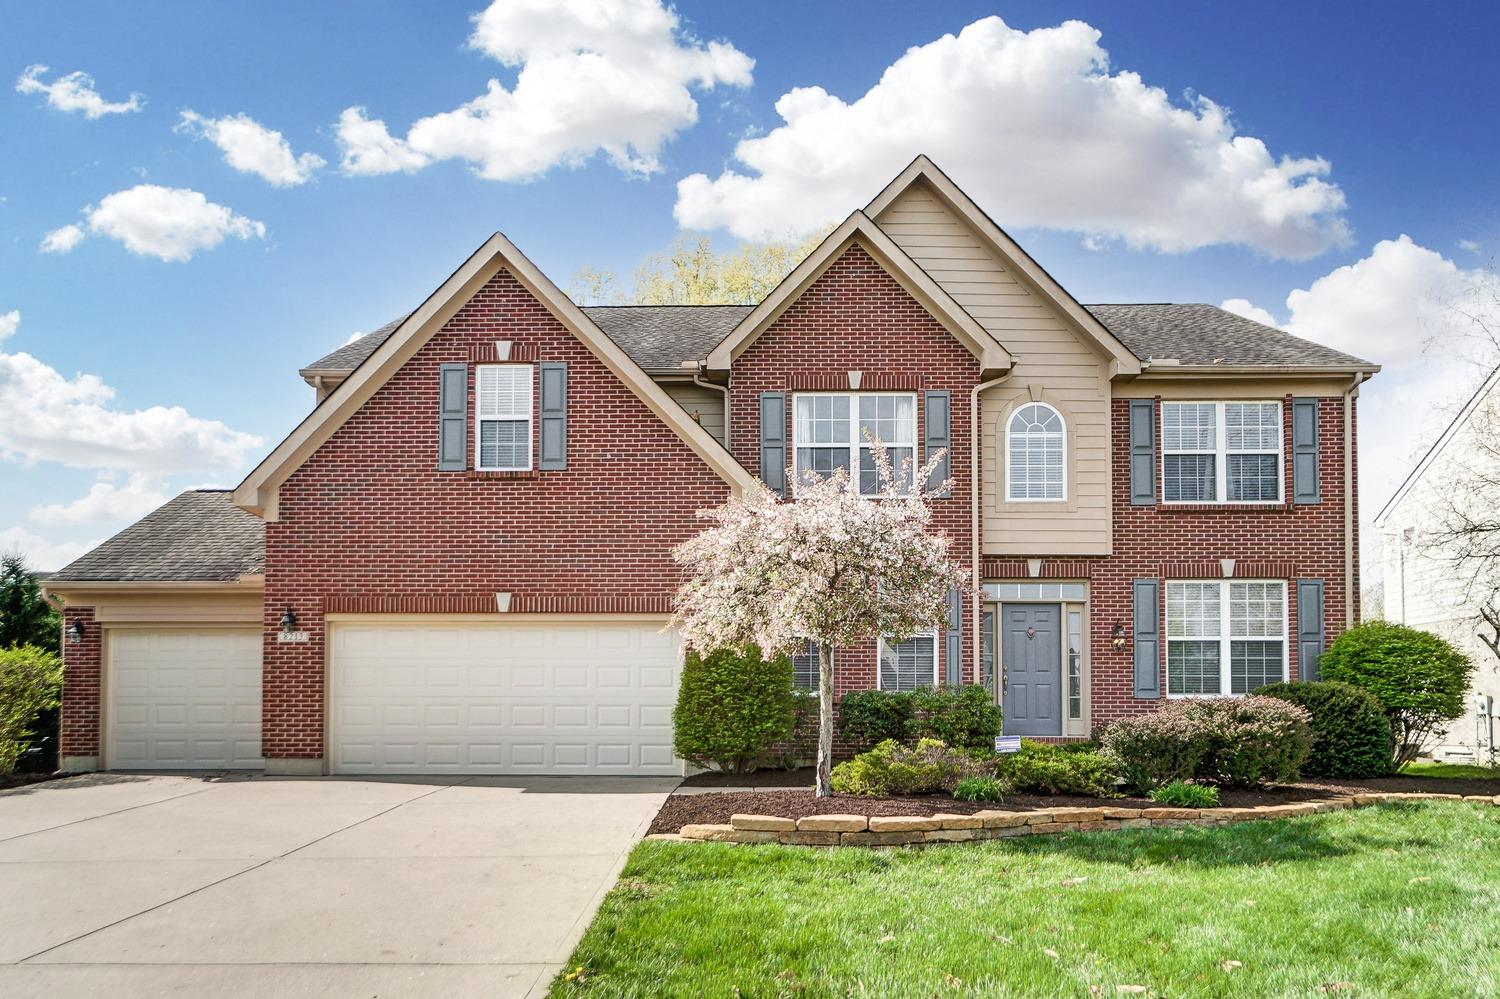 Fabulous in Four Bridges! Quiet Cul-de-sac. Large  Fenced yard. Flex Rooms Galore w/Loft, LL Bonus, 1st fl Study. Laundry on 2nd fl. Large master bedroom with en-suite bath & TWO Walk-in Closets. Kitchen w/tiled backsplash, solid surf. cntrs, pantry, Eat-in area AND island w/ a walk out to the back patio. Fin LL with Full bath and Lrg Rec Room.